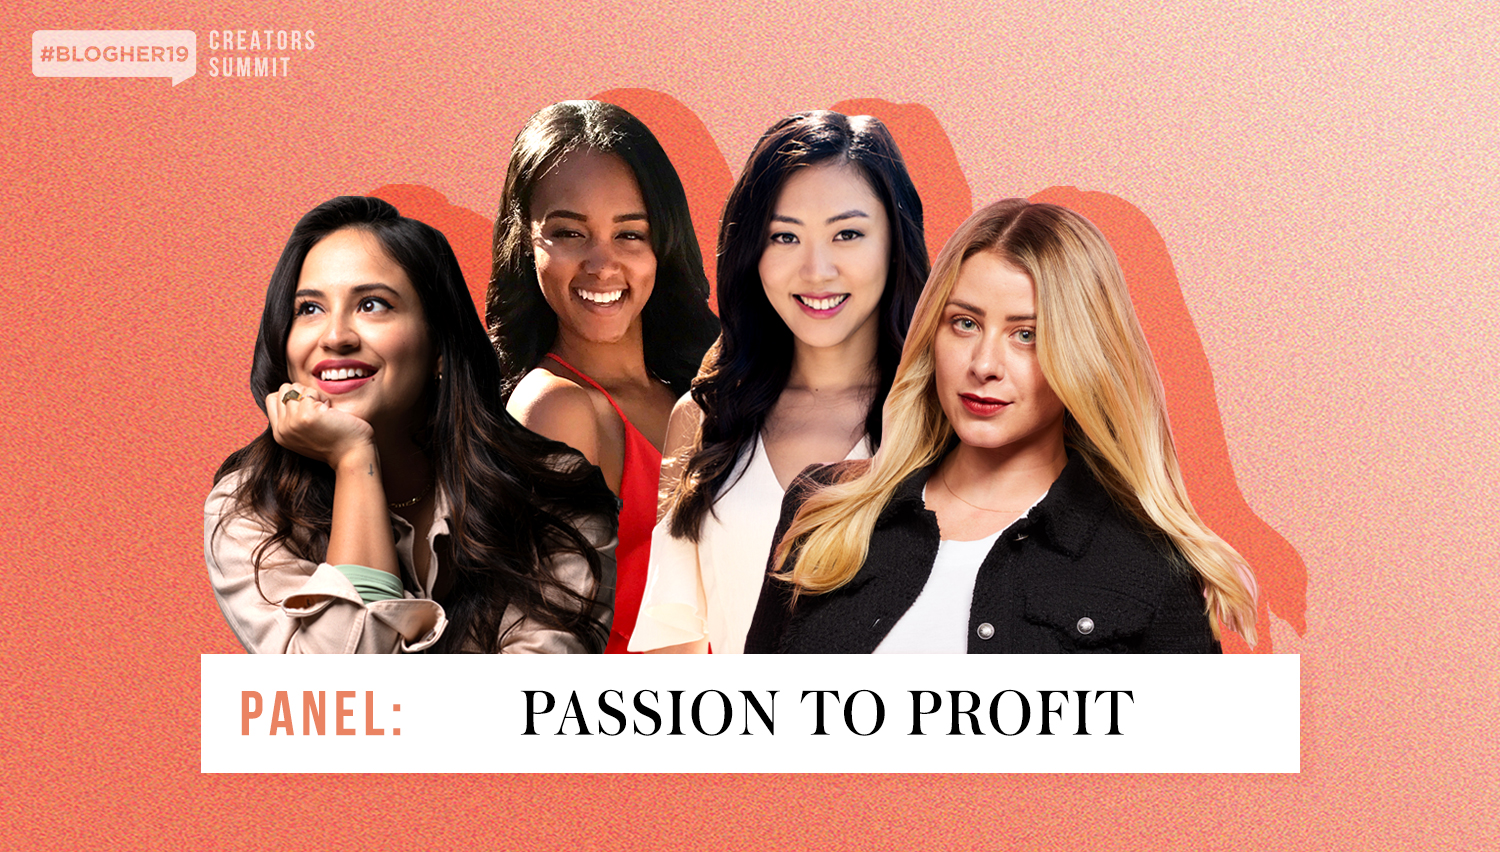 learn how to build a thriving business - In this panel at #BlogHer19 Creators Summit, attendees will learn from three top female entrepreneurs who have built successful businesses from the ground up.